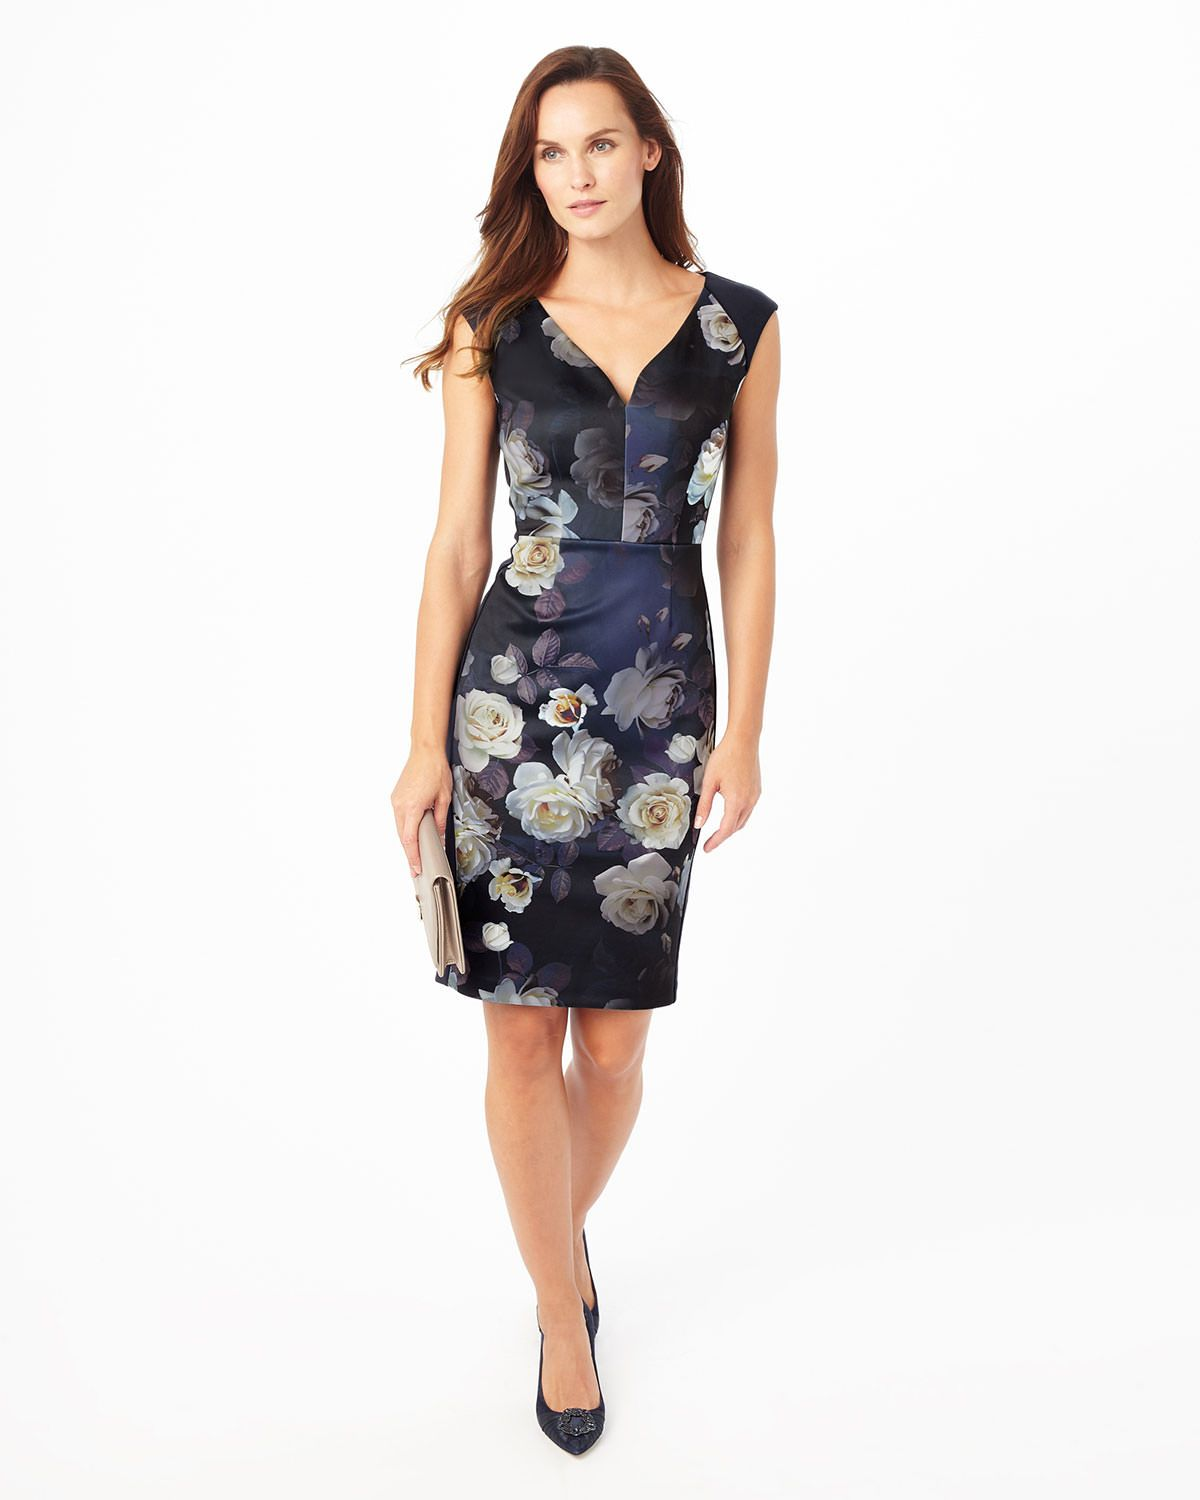 Phase eight camilla rose floral dress blue wedding guest for Wedding guest dresses size 20